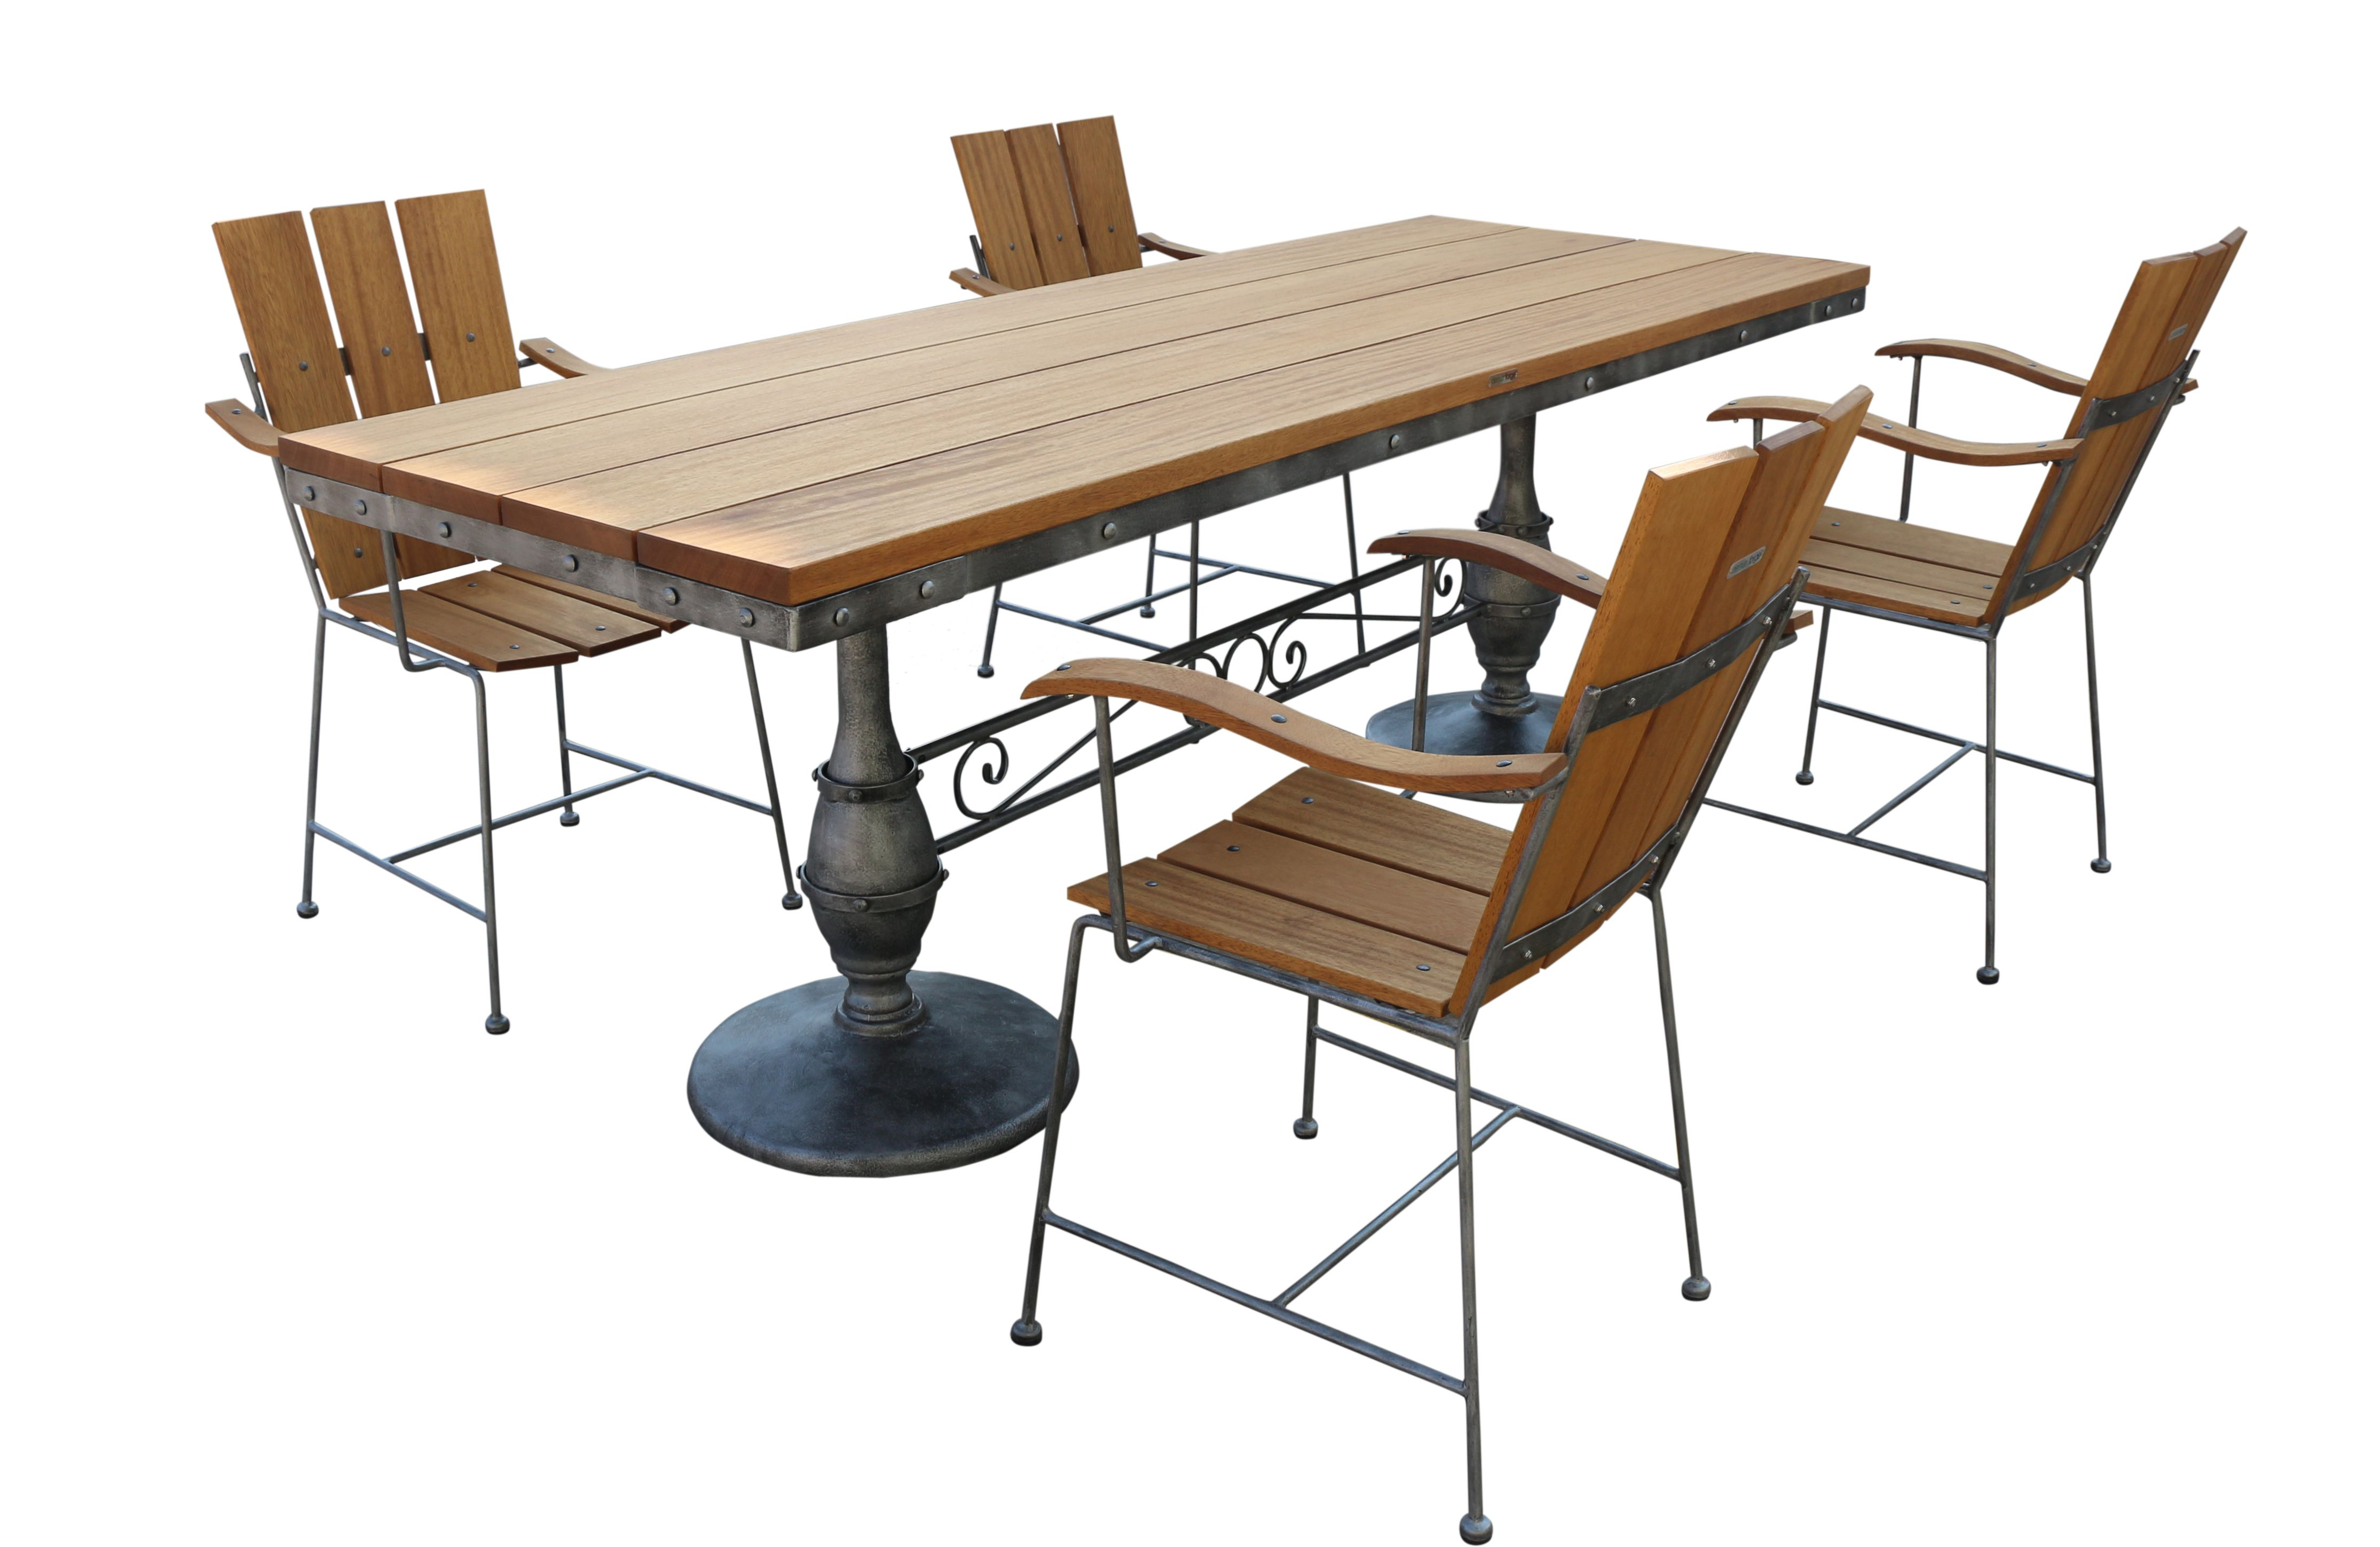 Dining table teak wood top and wrought iron chairs. | salon ...